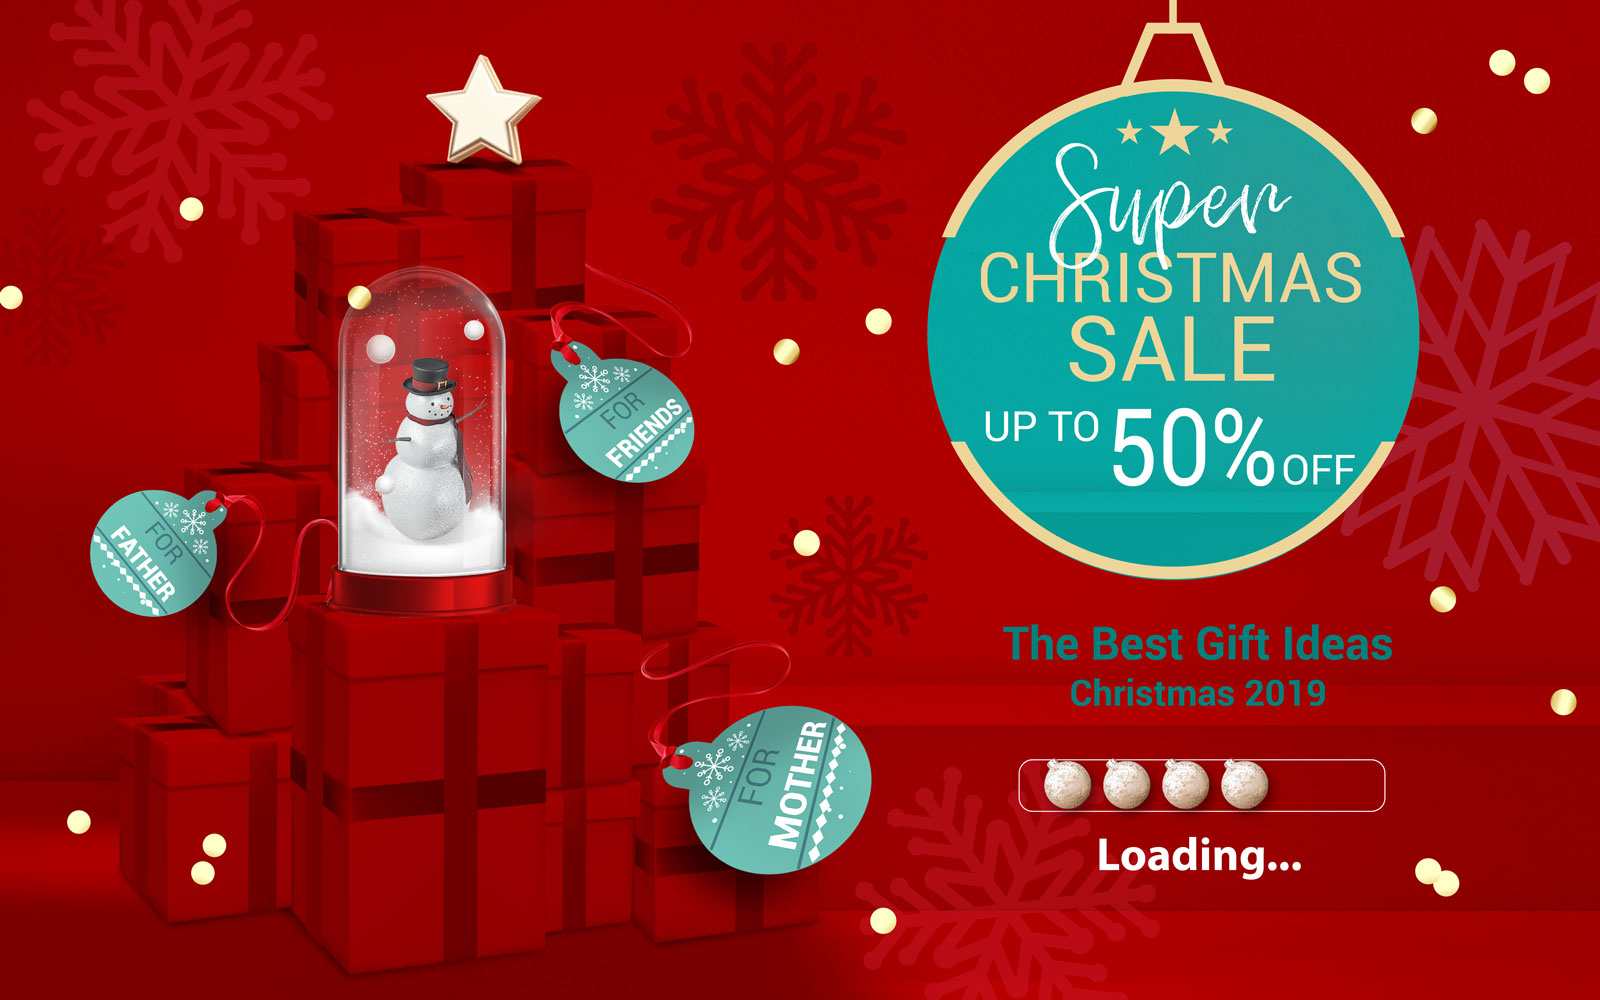 PerfectPrime Christmas banner with up to 50% off products